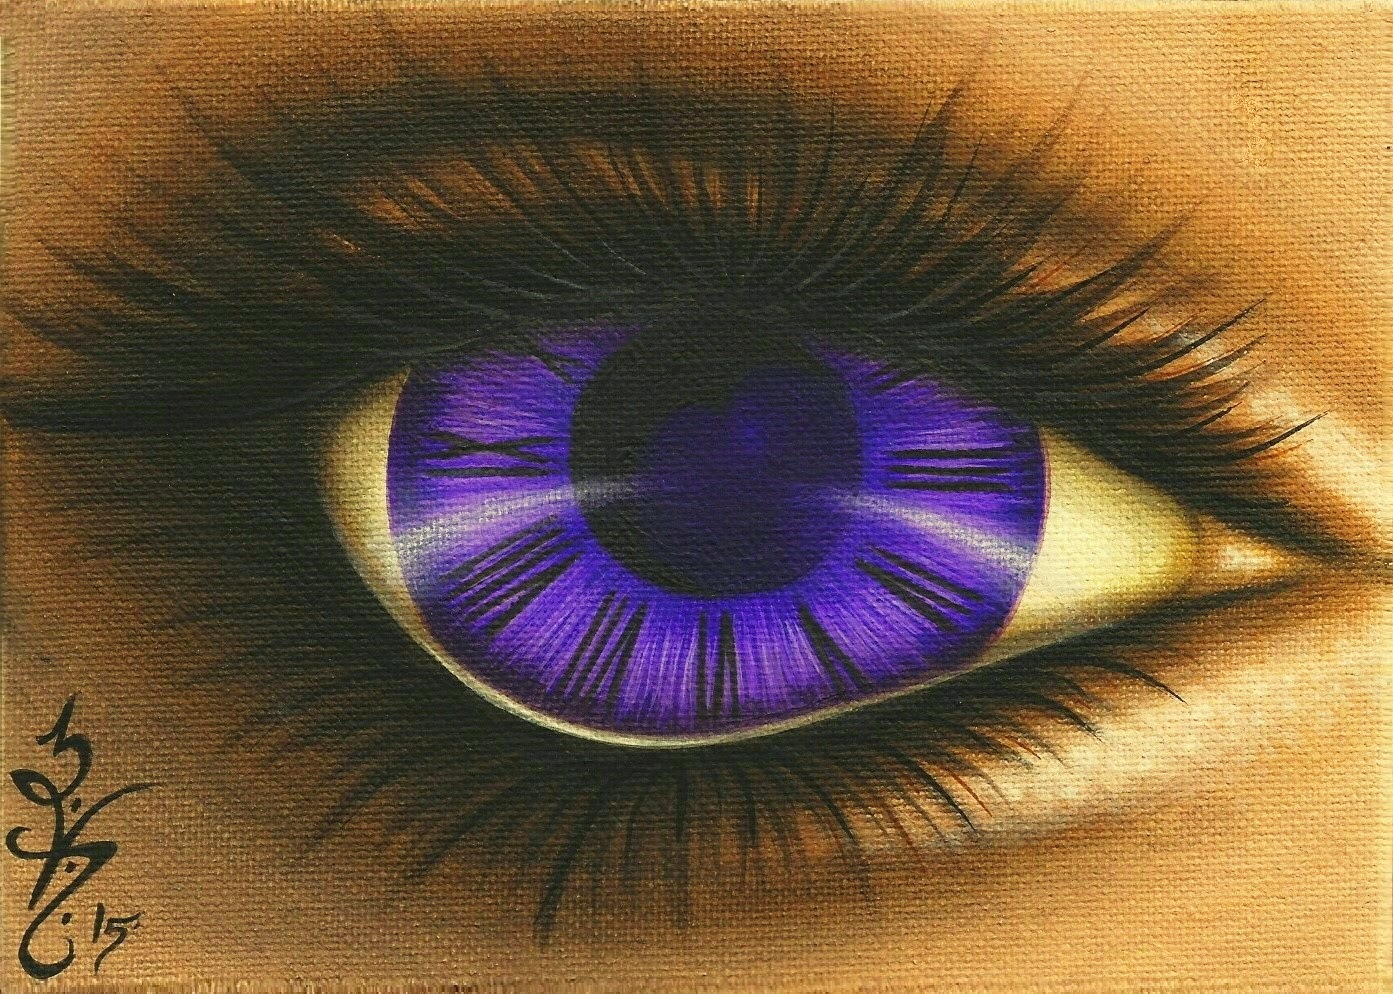 https://www.etsy.com/listing/225823717/original-fantasy-surreal-purple-big-eye?ref=shop_home_active_1